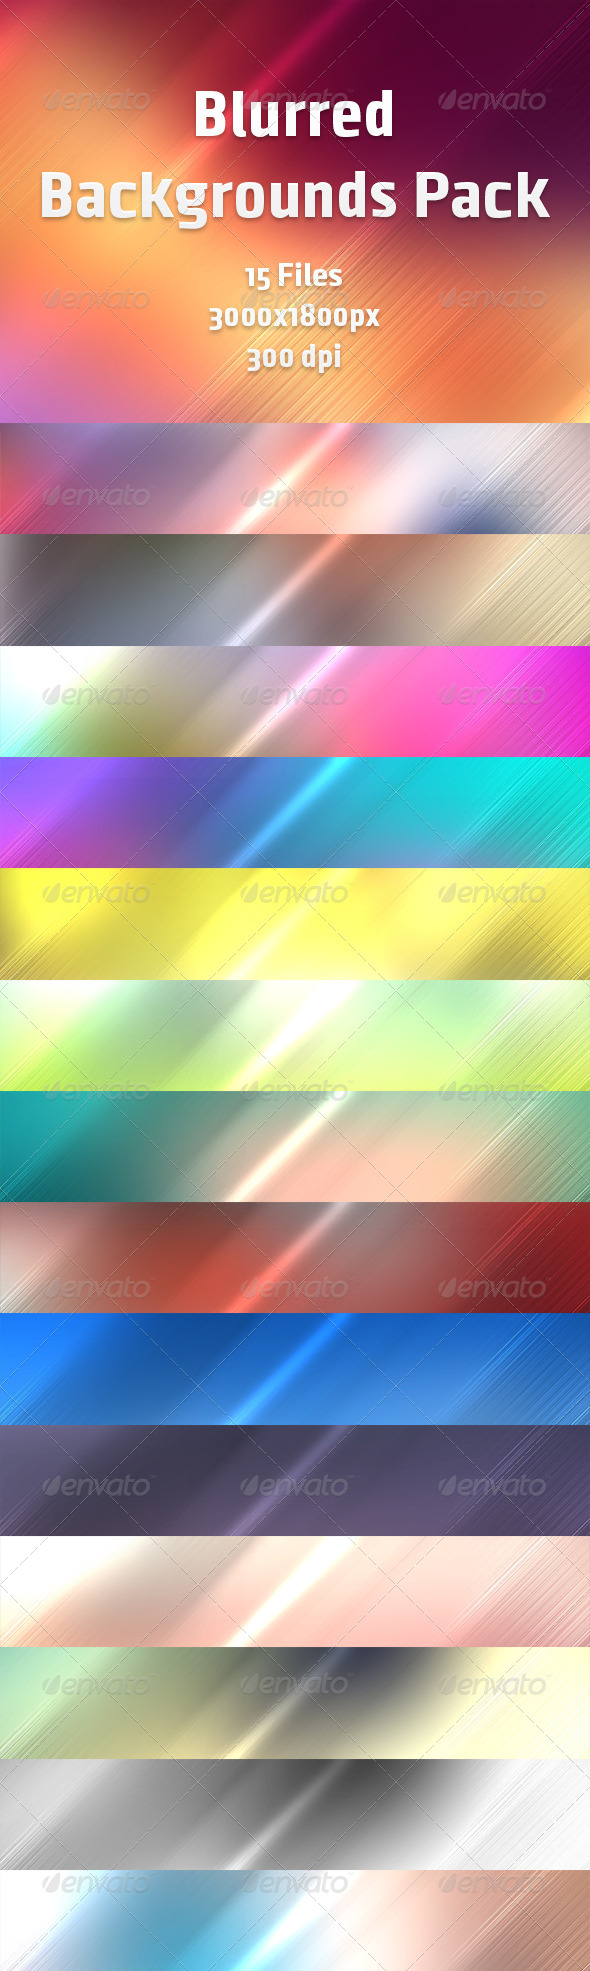 GraphicRiver Blurred Backgrounds Pack 6704377